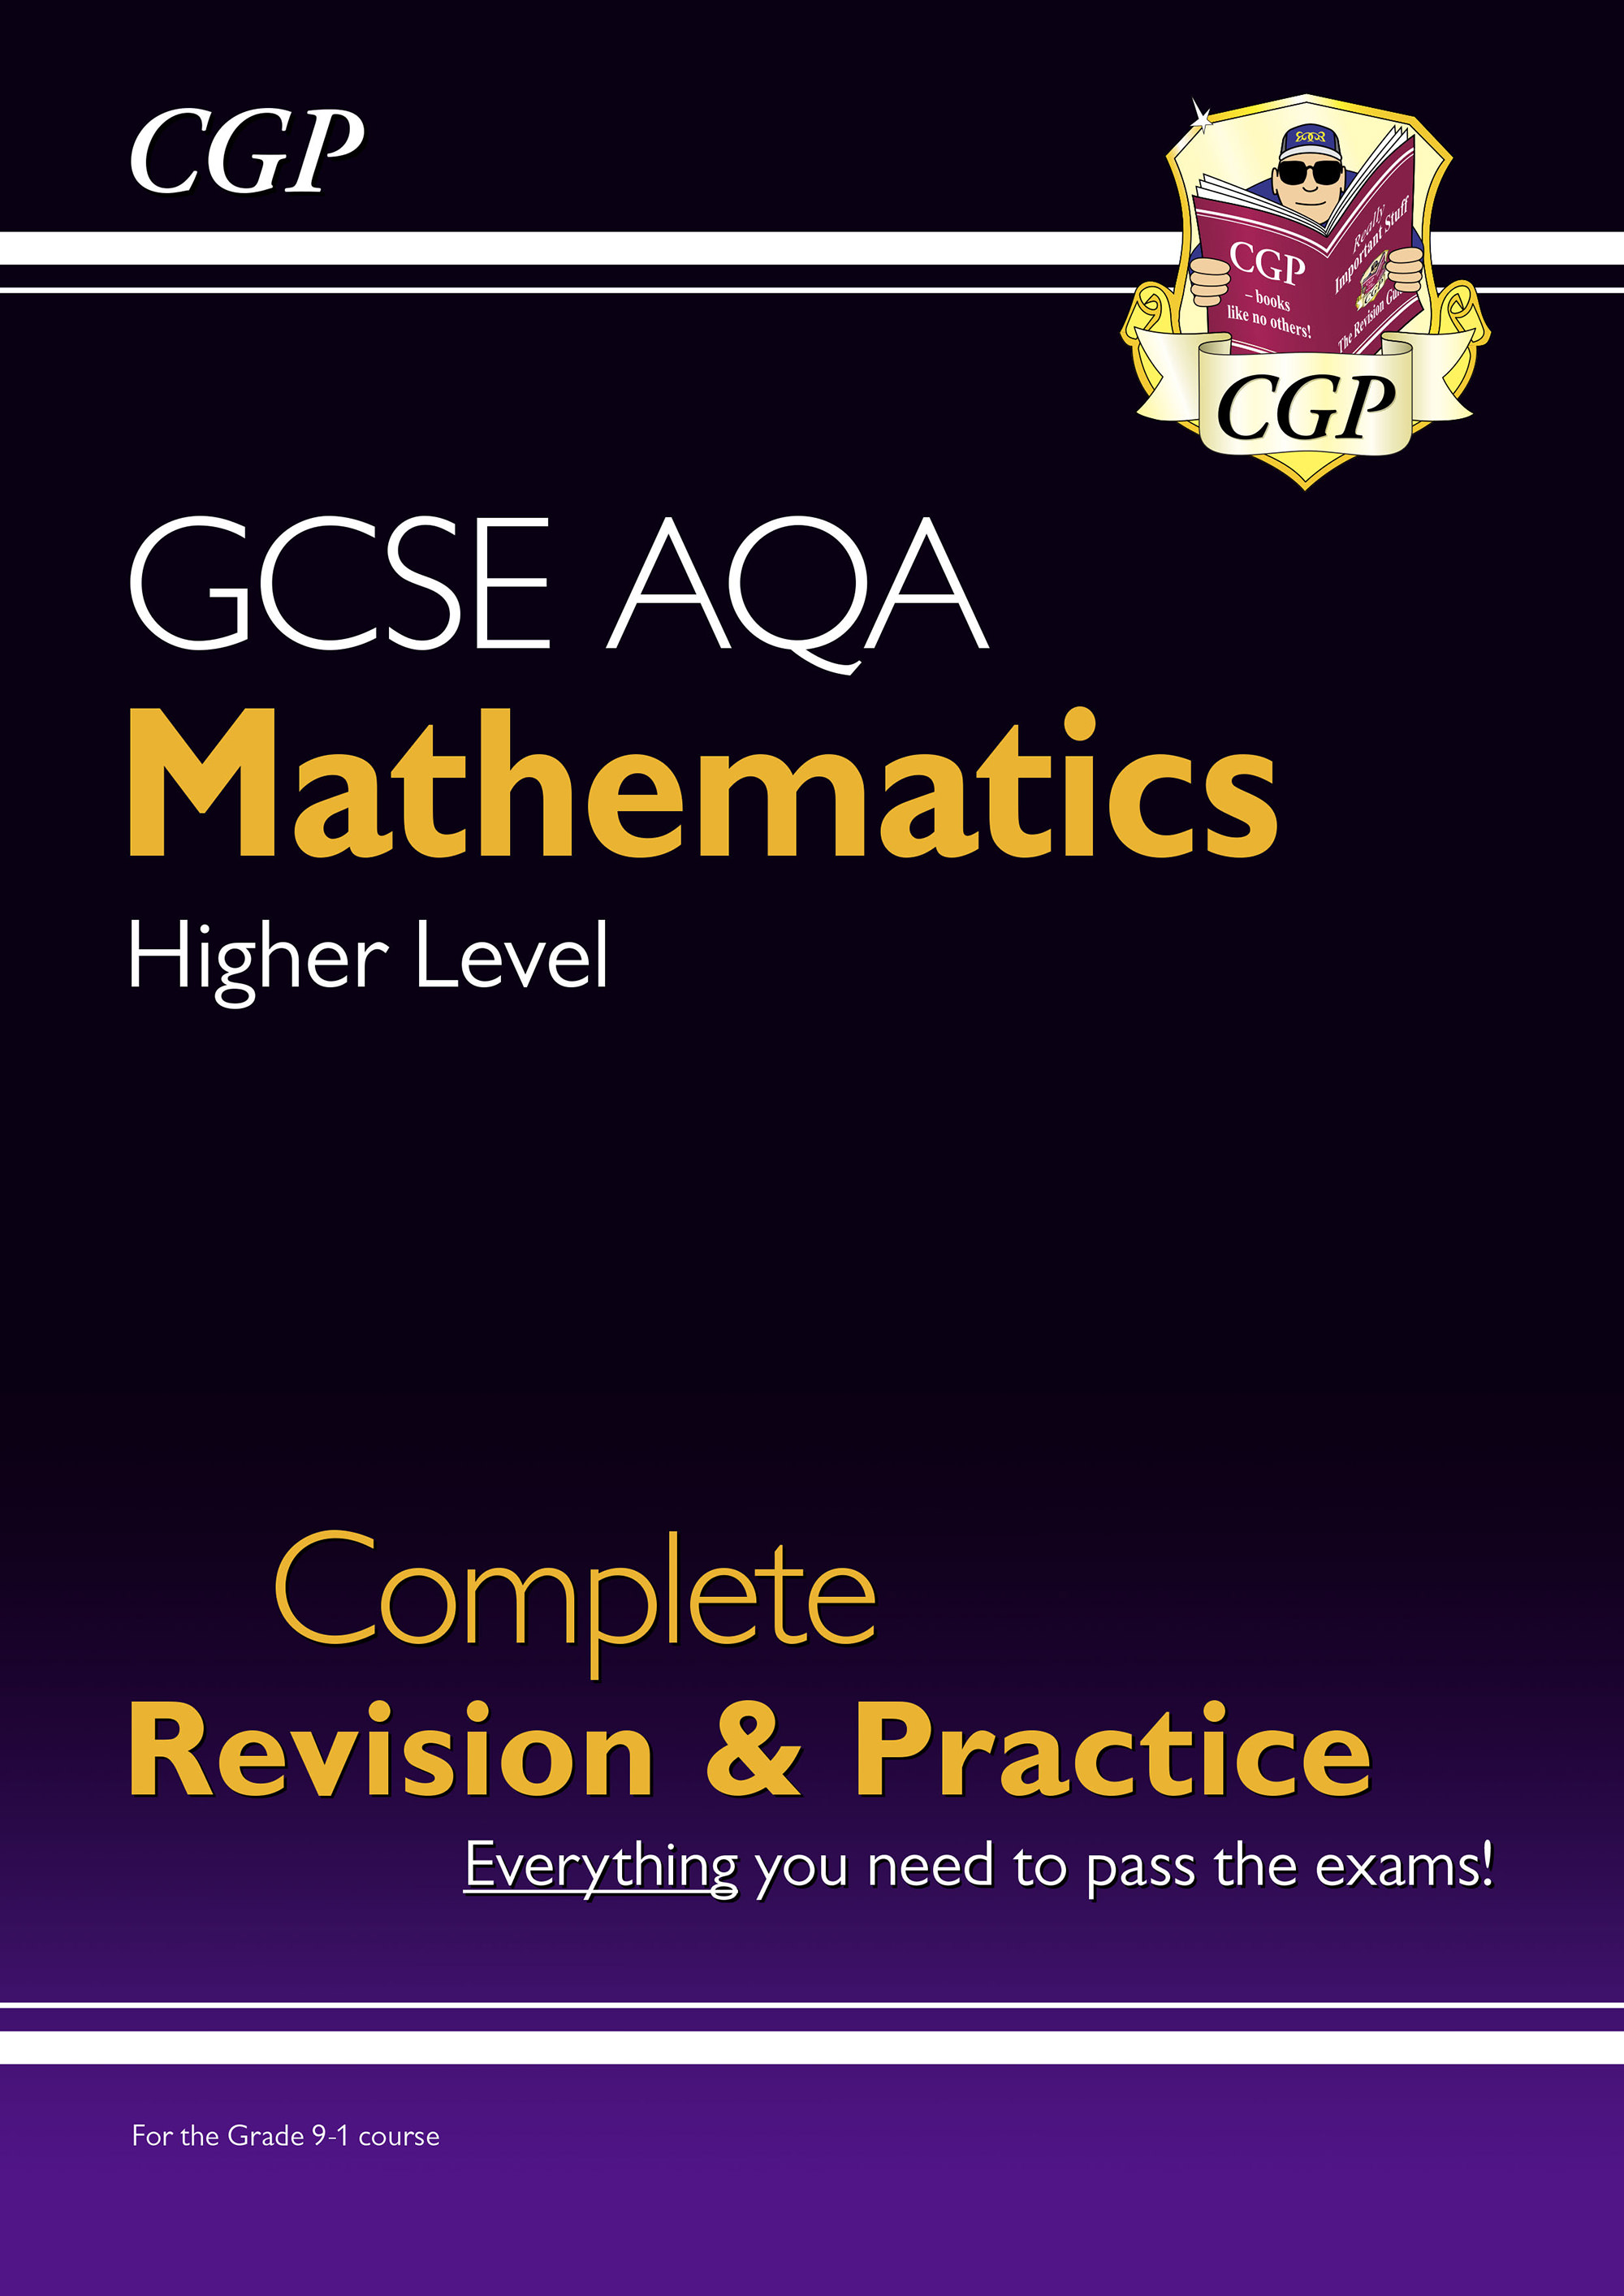 MQHS43DK - GCSE Maths AQA Complete Revision & Practice: Higher - for the Grade 9-1 Course